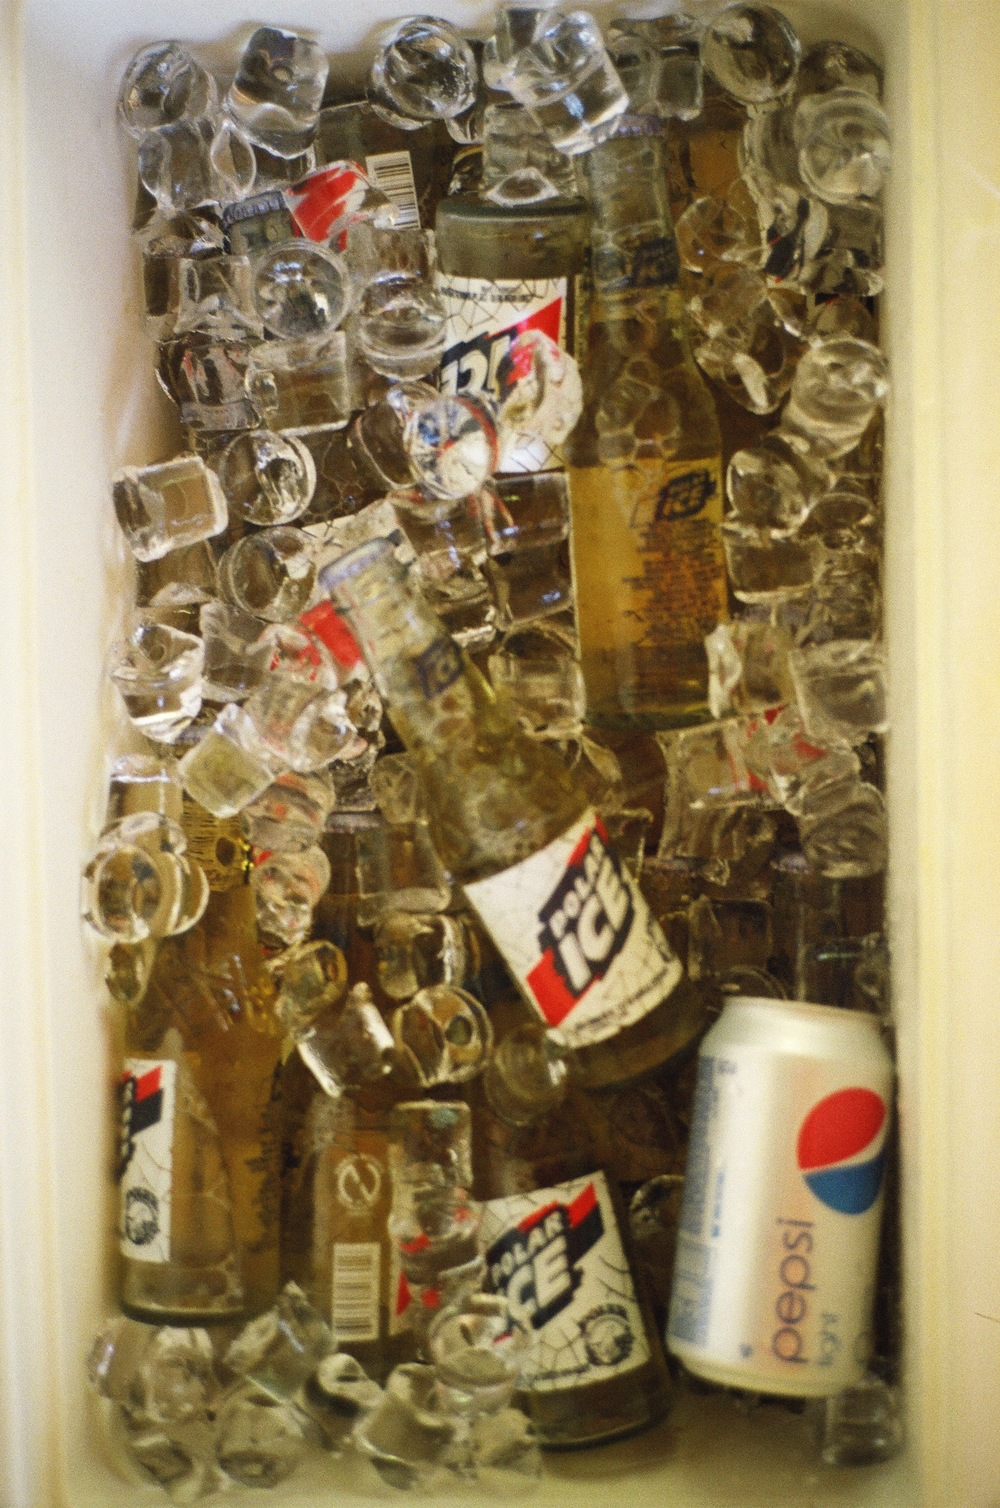 56_pepsi-light-caruao.jpg